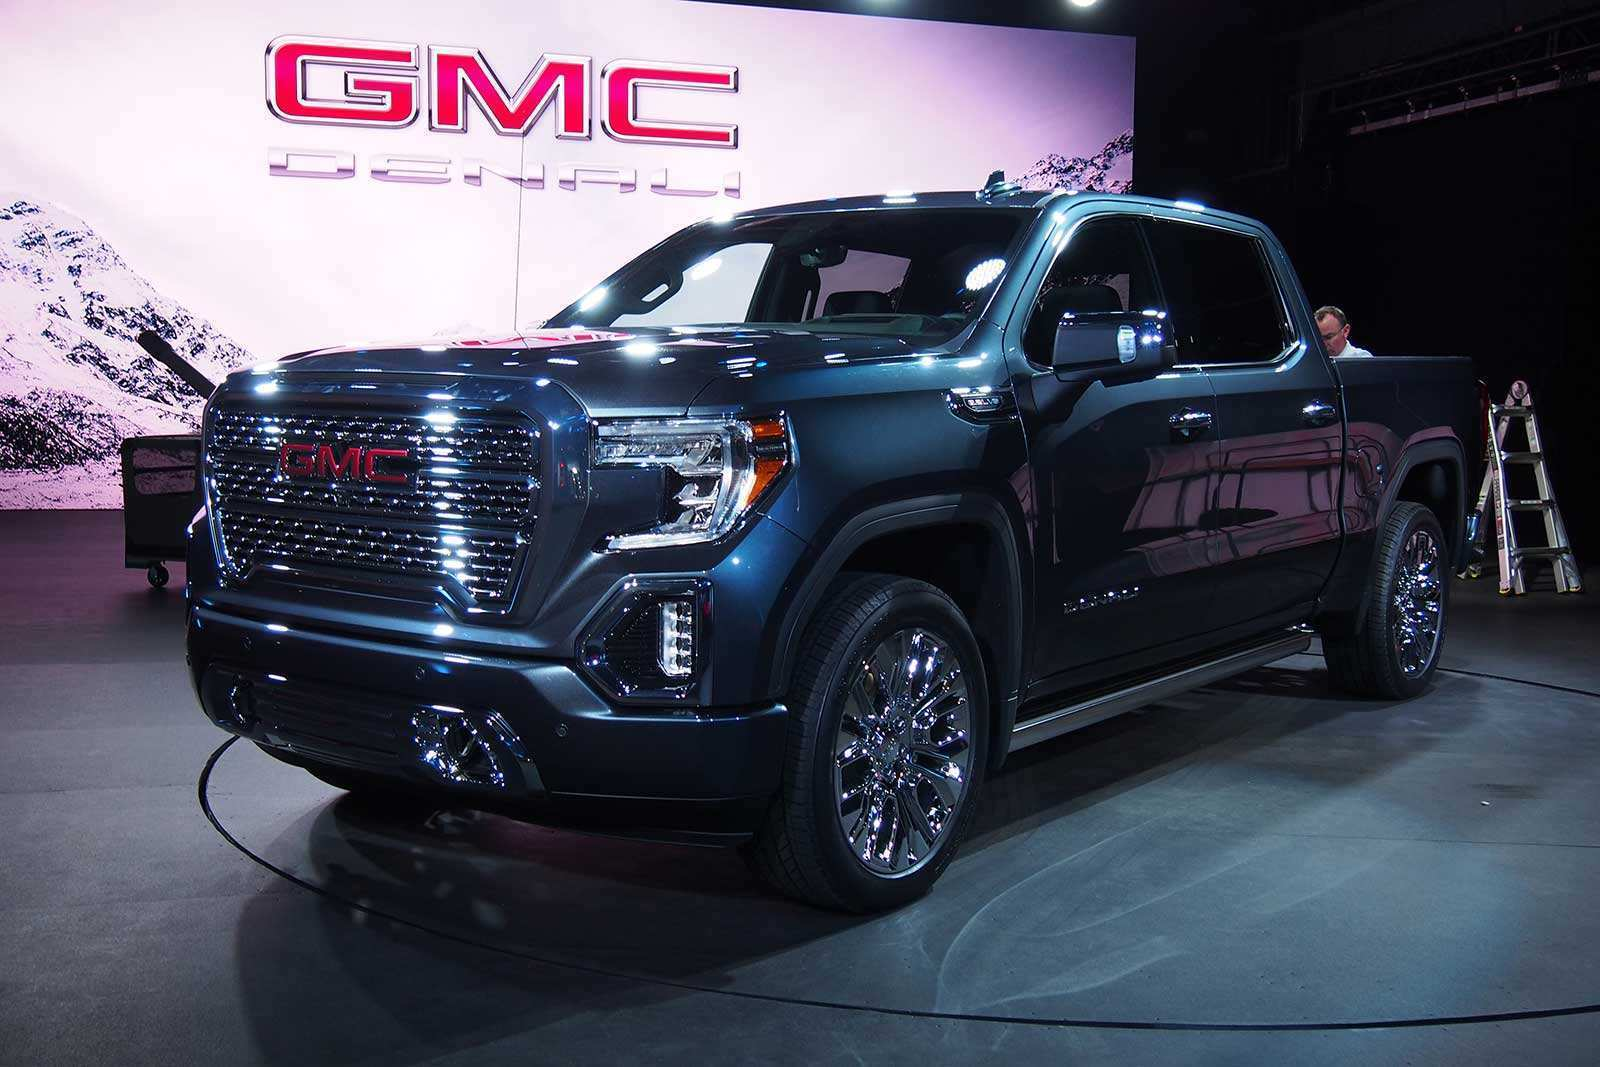 77 Gallery of 2019 Gmc News Specs and Review with 2019 Gmc News